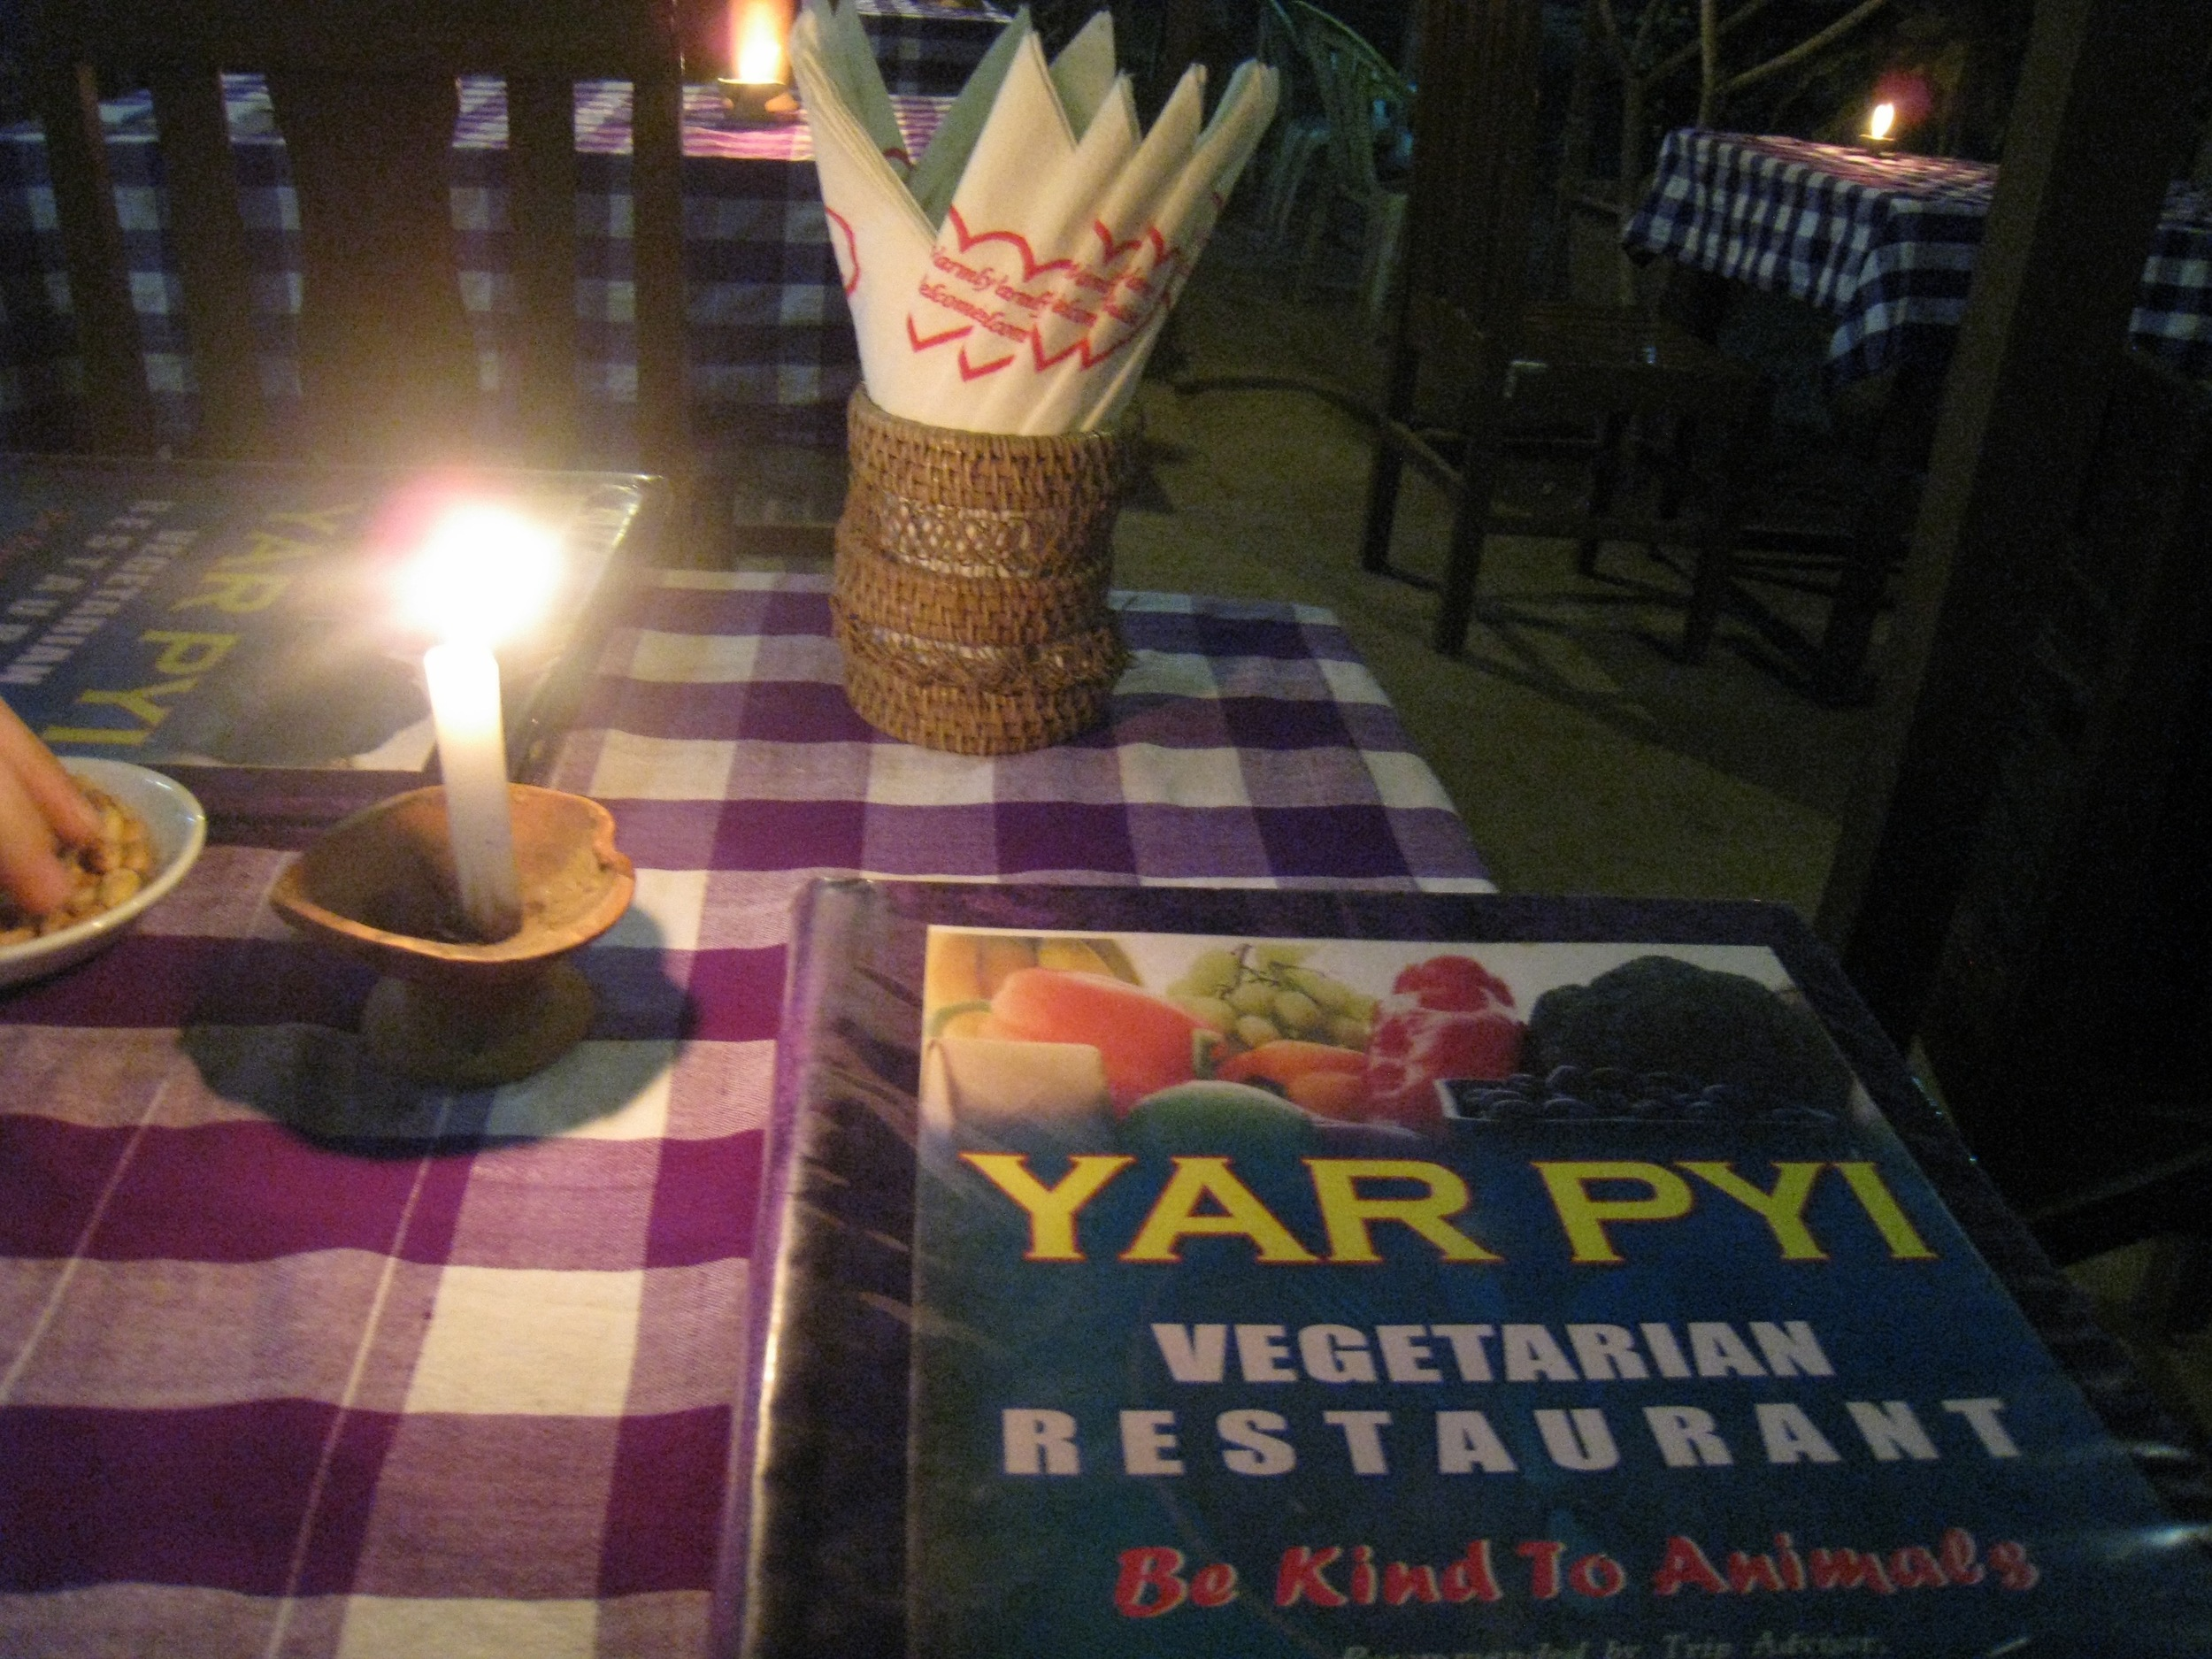 A FAMILY OWNED 'BE NICE TO ANIMALS'RESTAURANT: YAR PYI